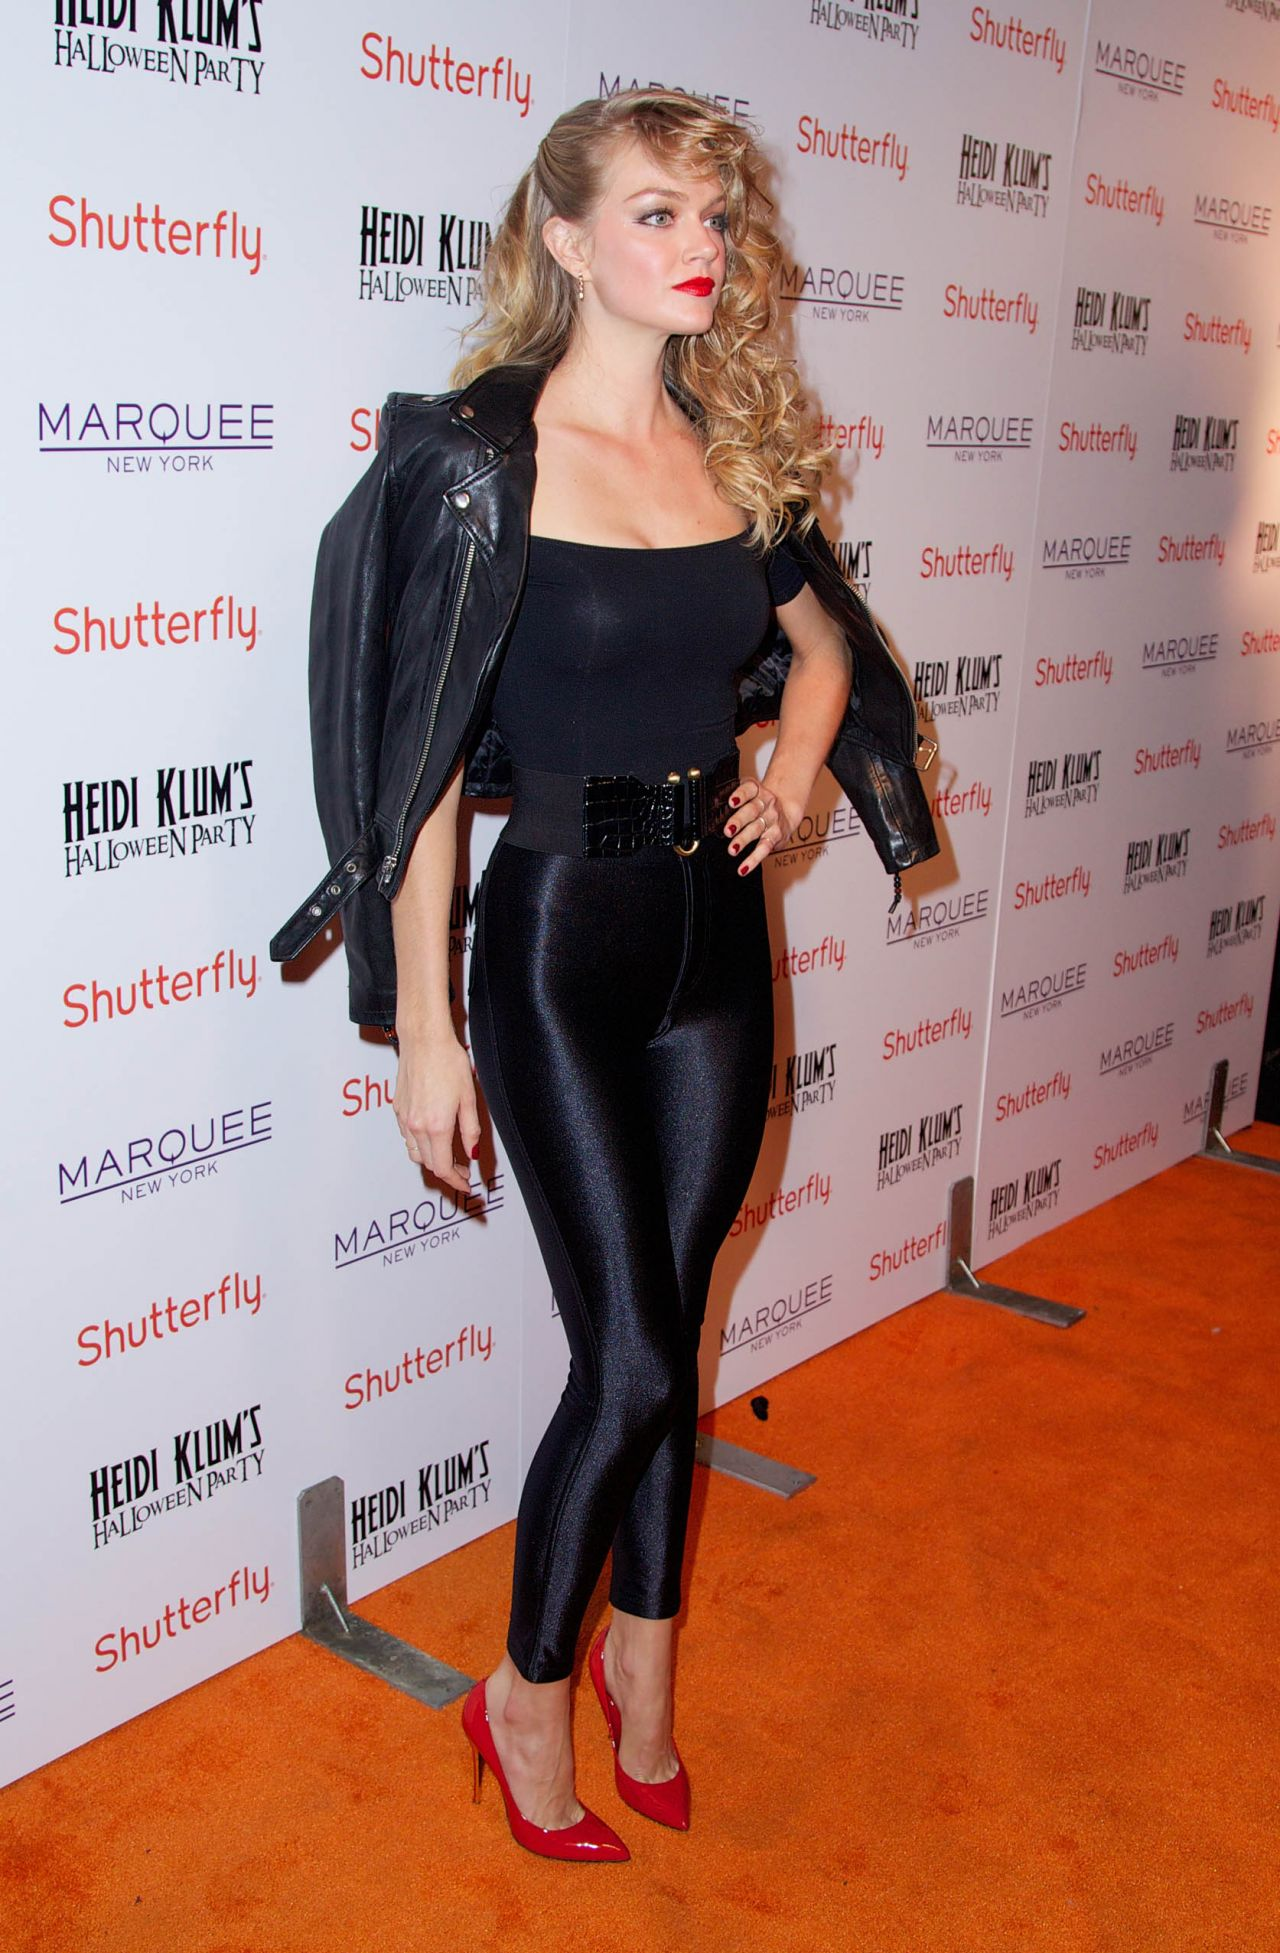 Lindsay Ellingson in Tight Pants - Heidi Klum